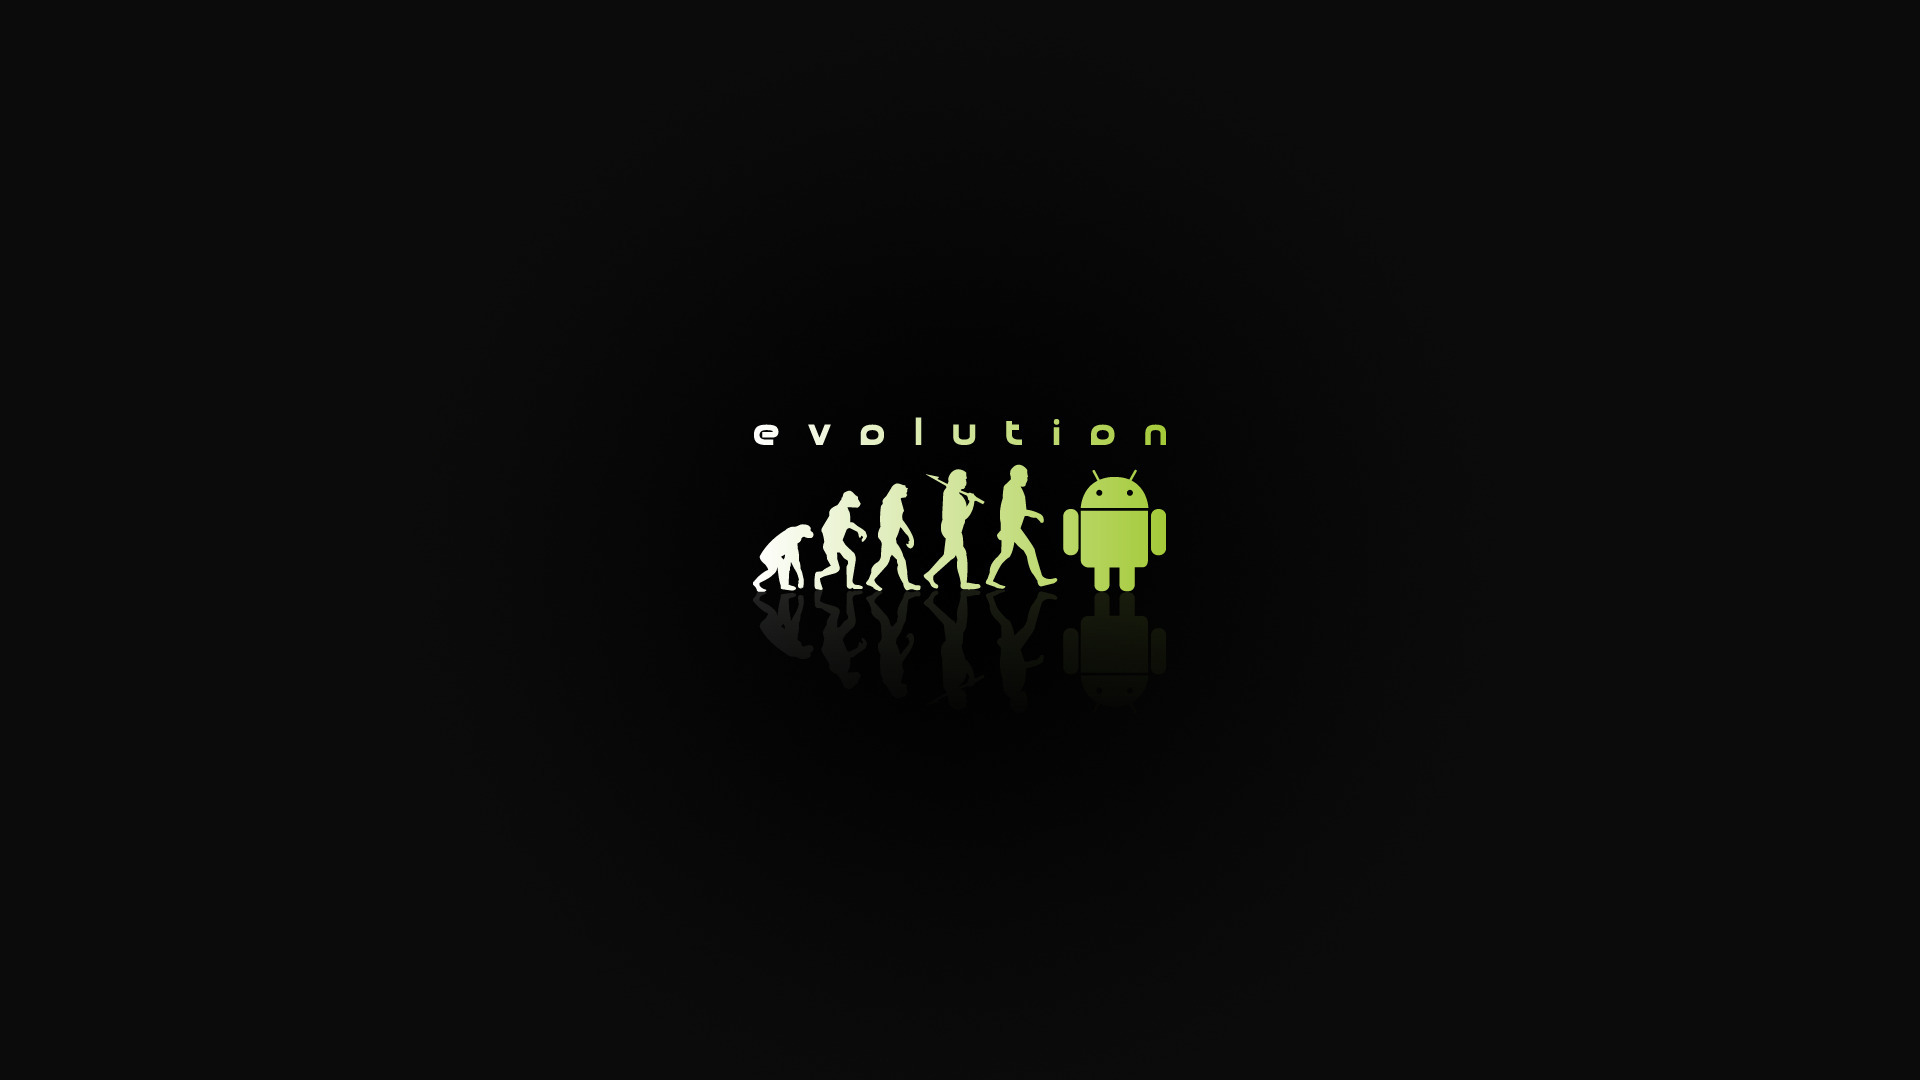 Android Evolution Hd Wallpaper